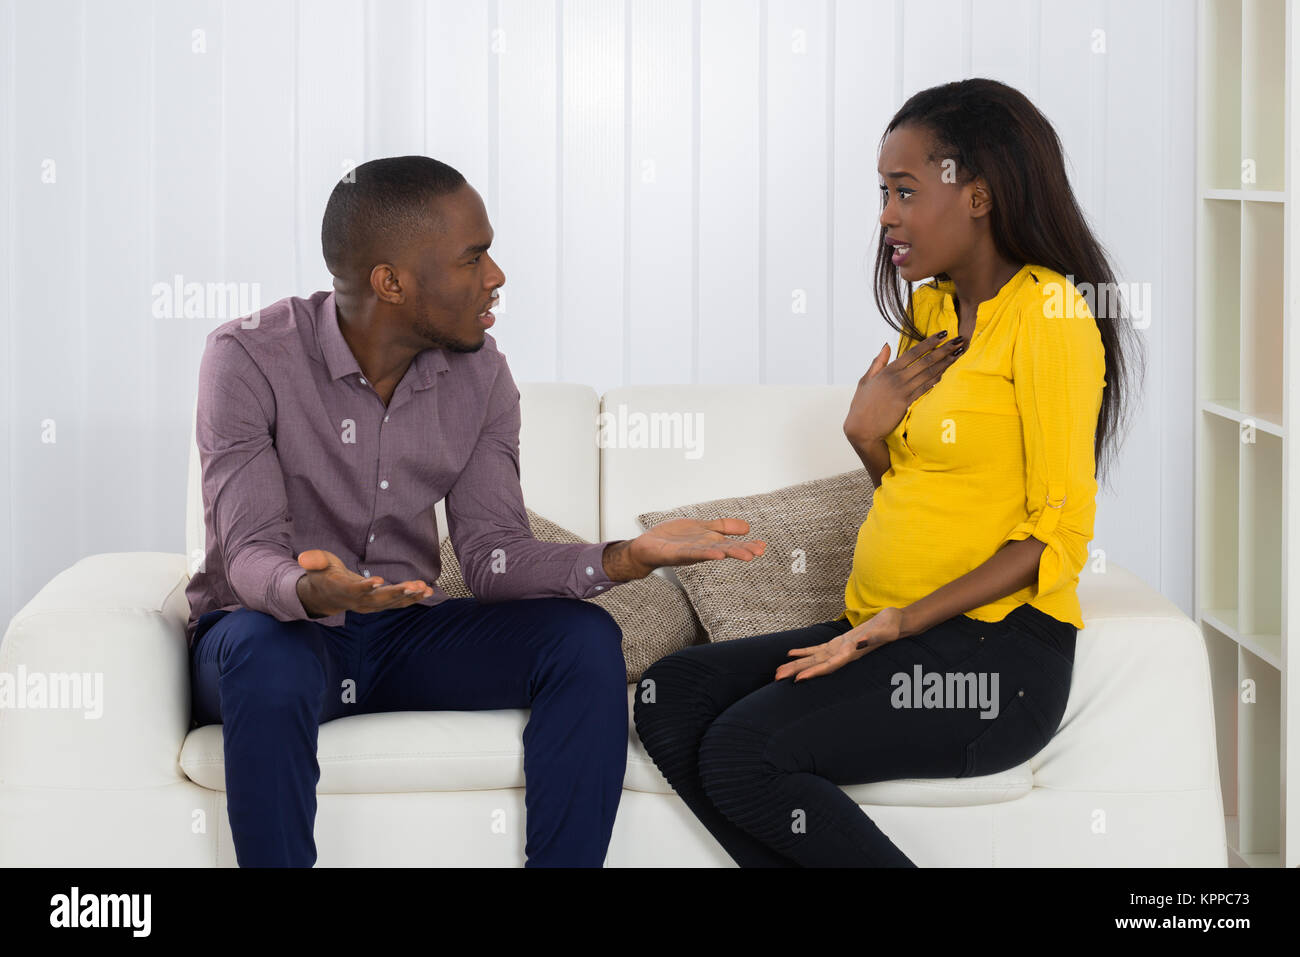 Couple Quarreling With Each Other - Stock Image